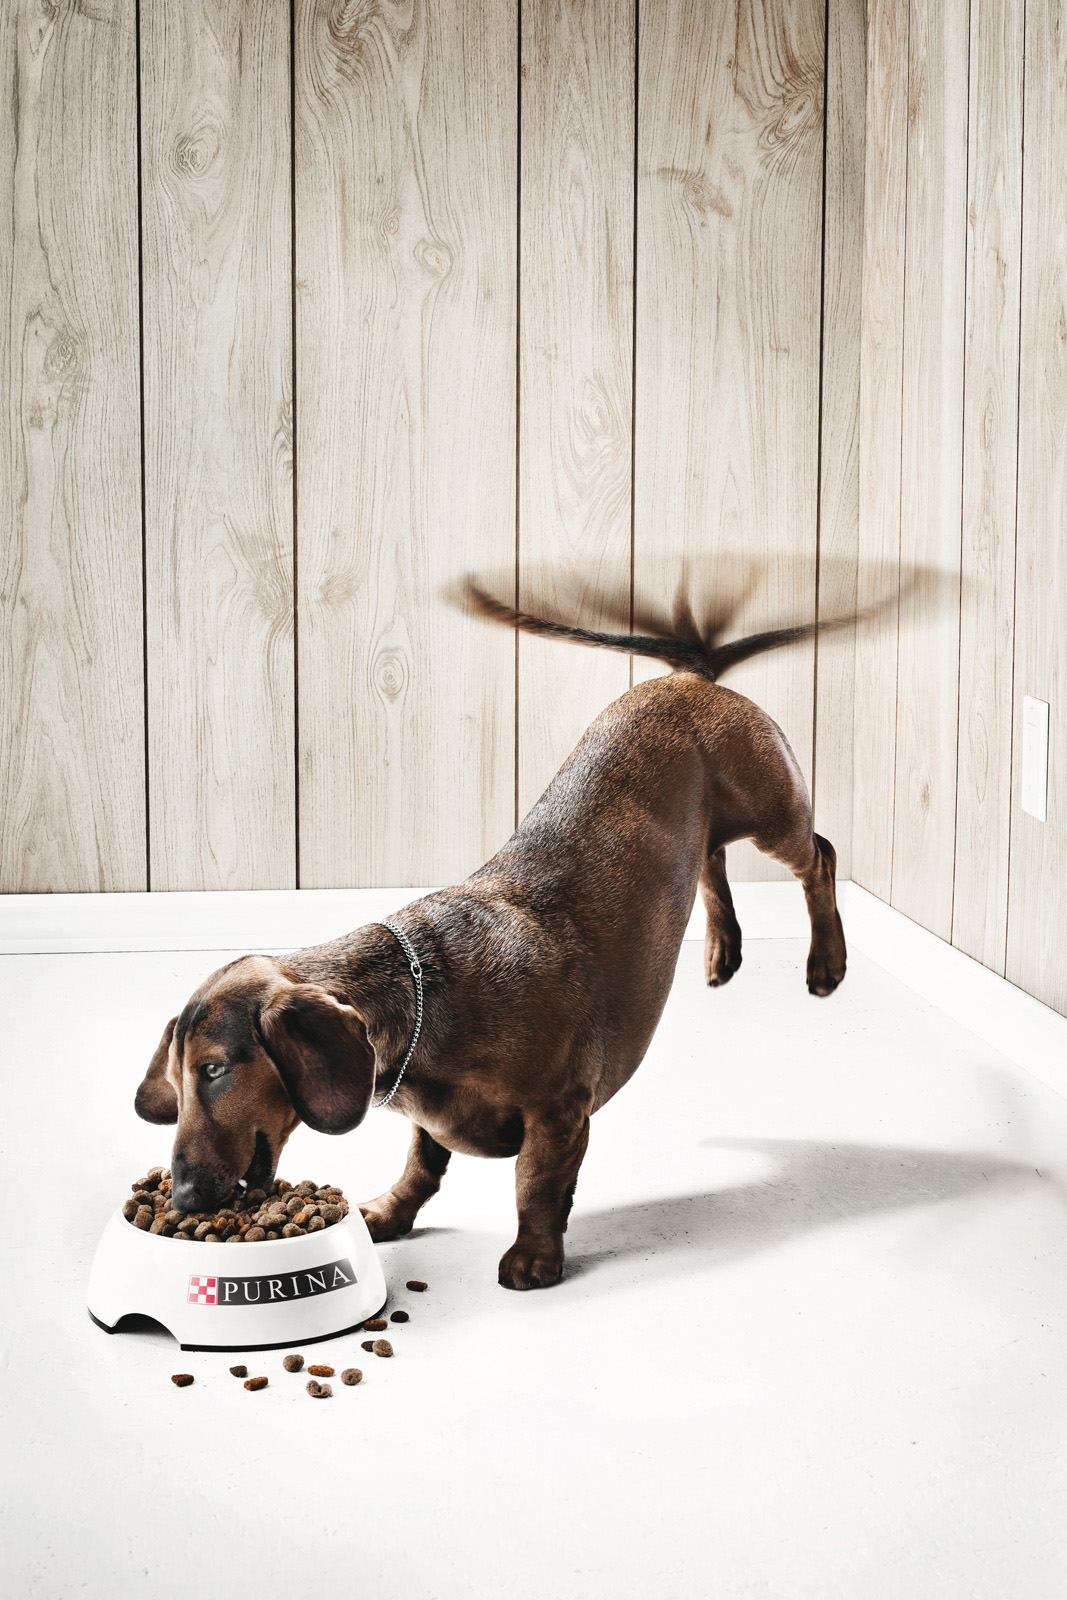 THE DOG  Client: Purina Agence: Publicis Création: Nicolas Massey, Carl Robichaud Direction artistique: Julien Thiry Photo: Alain Desjean Retouche photo: Claude Lafrance